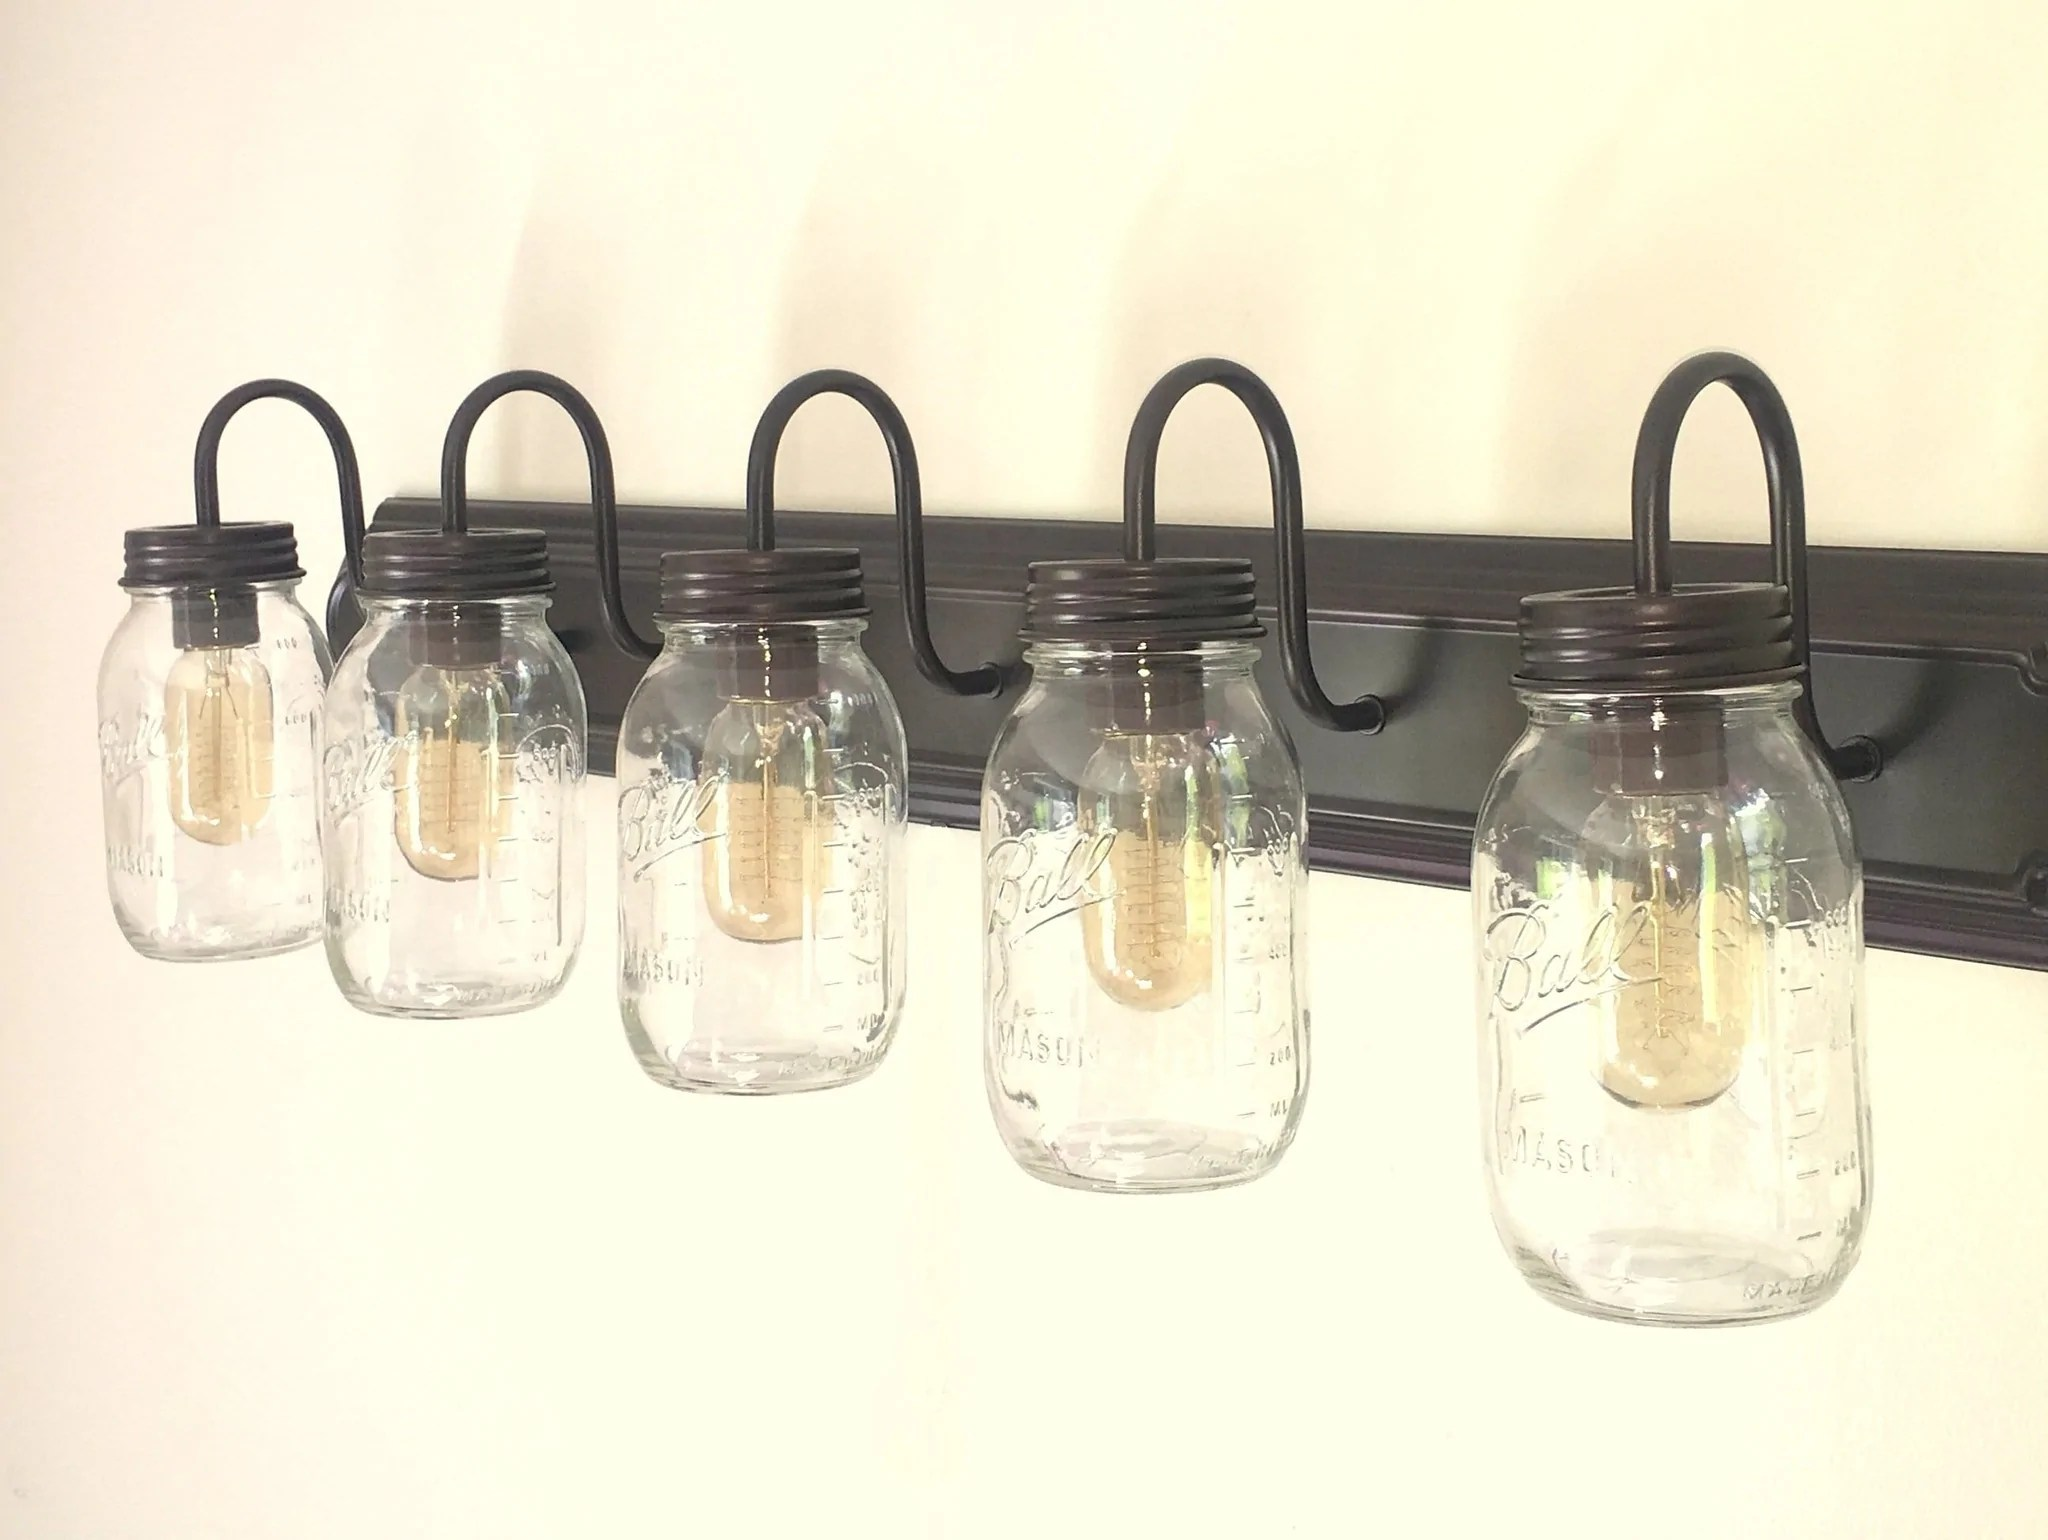 Mason Jar Bathroom Light Mason Jar Bathroom Vanity 5 Light Wall Sconce Fixture The Lamp Goods